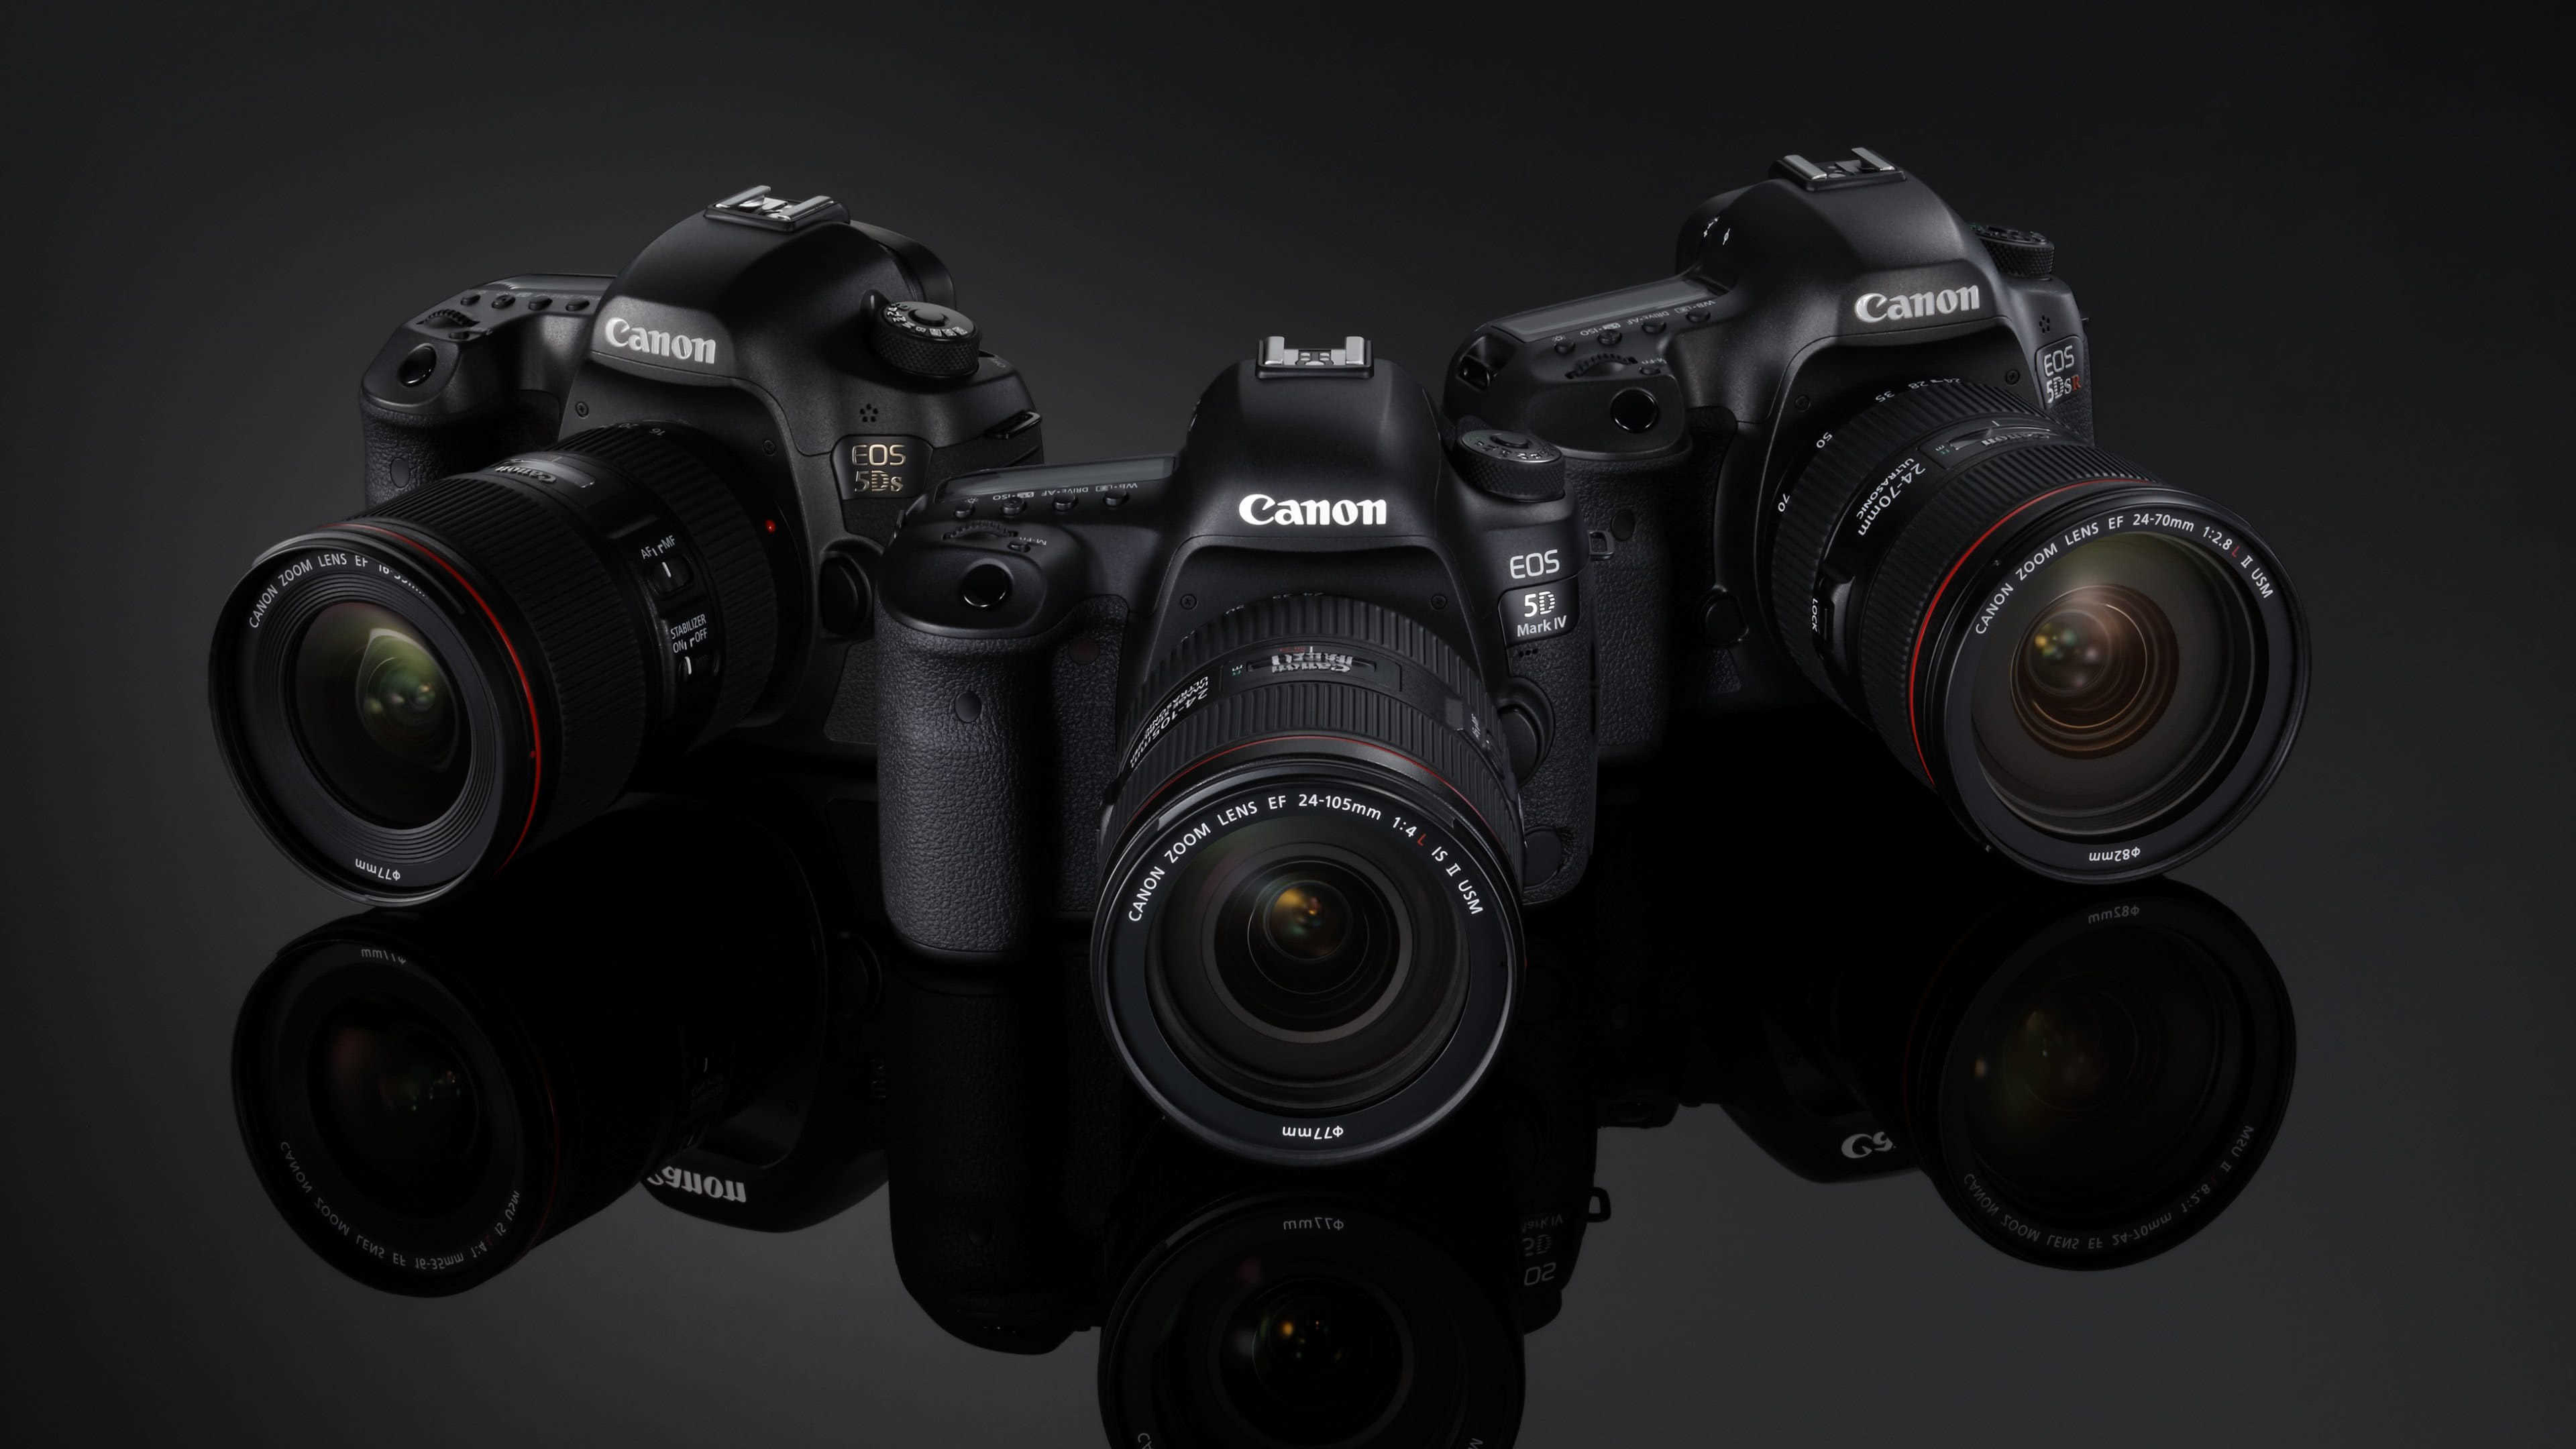 canon eos 5d mark iv uhd 4k wallpaper